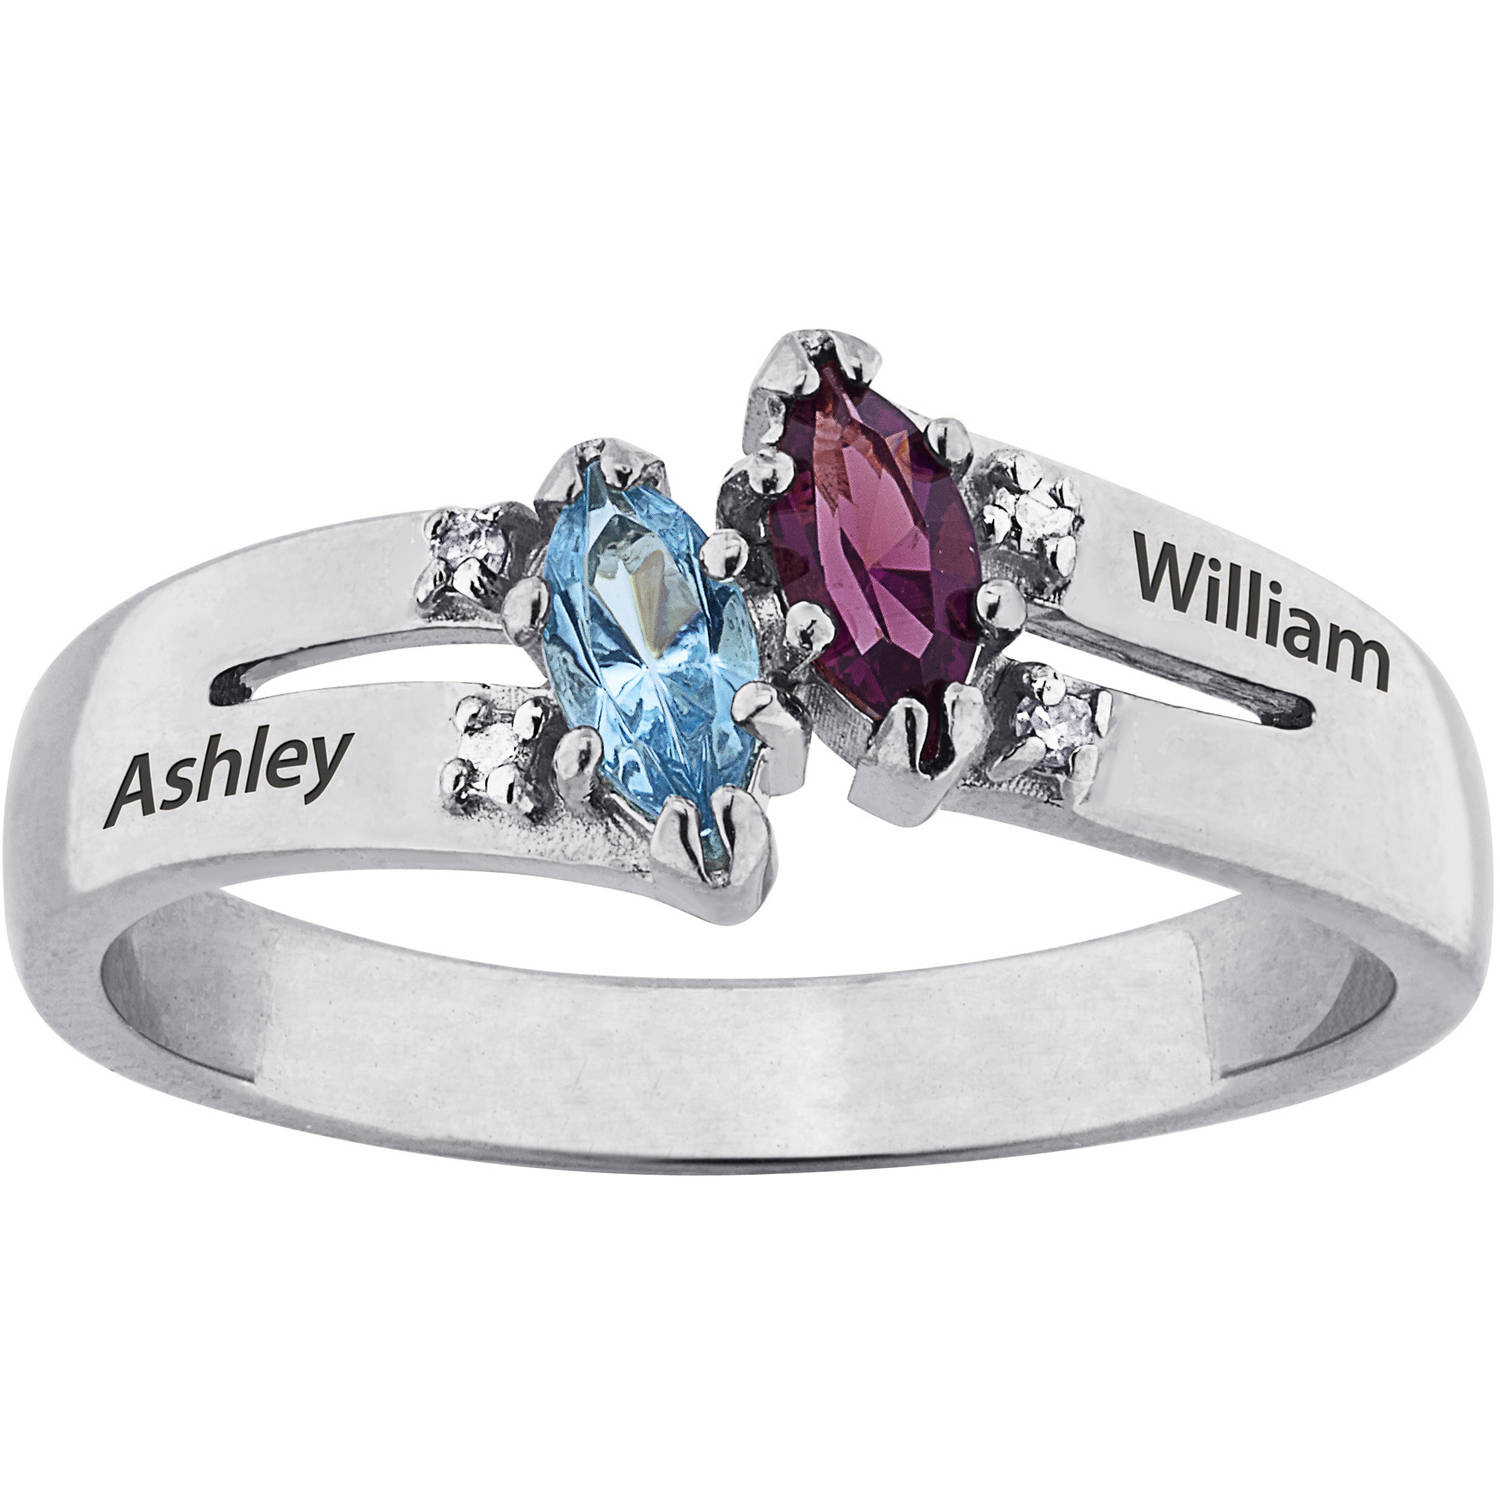 Personalized Sterling Silver Couples' Marquise Birthstone and Diamond Accent Ring